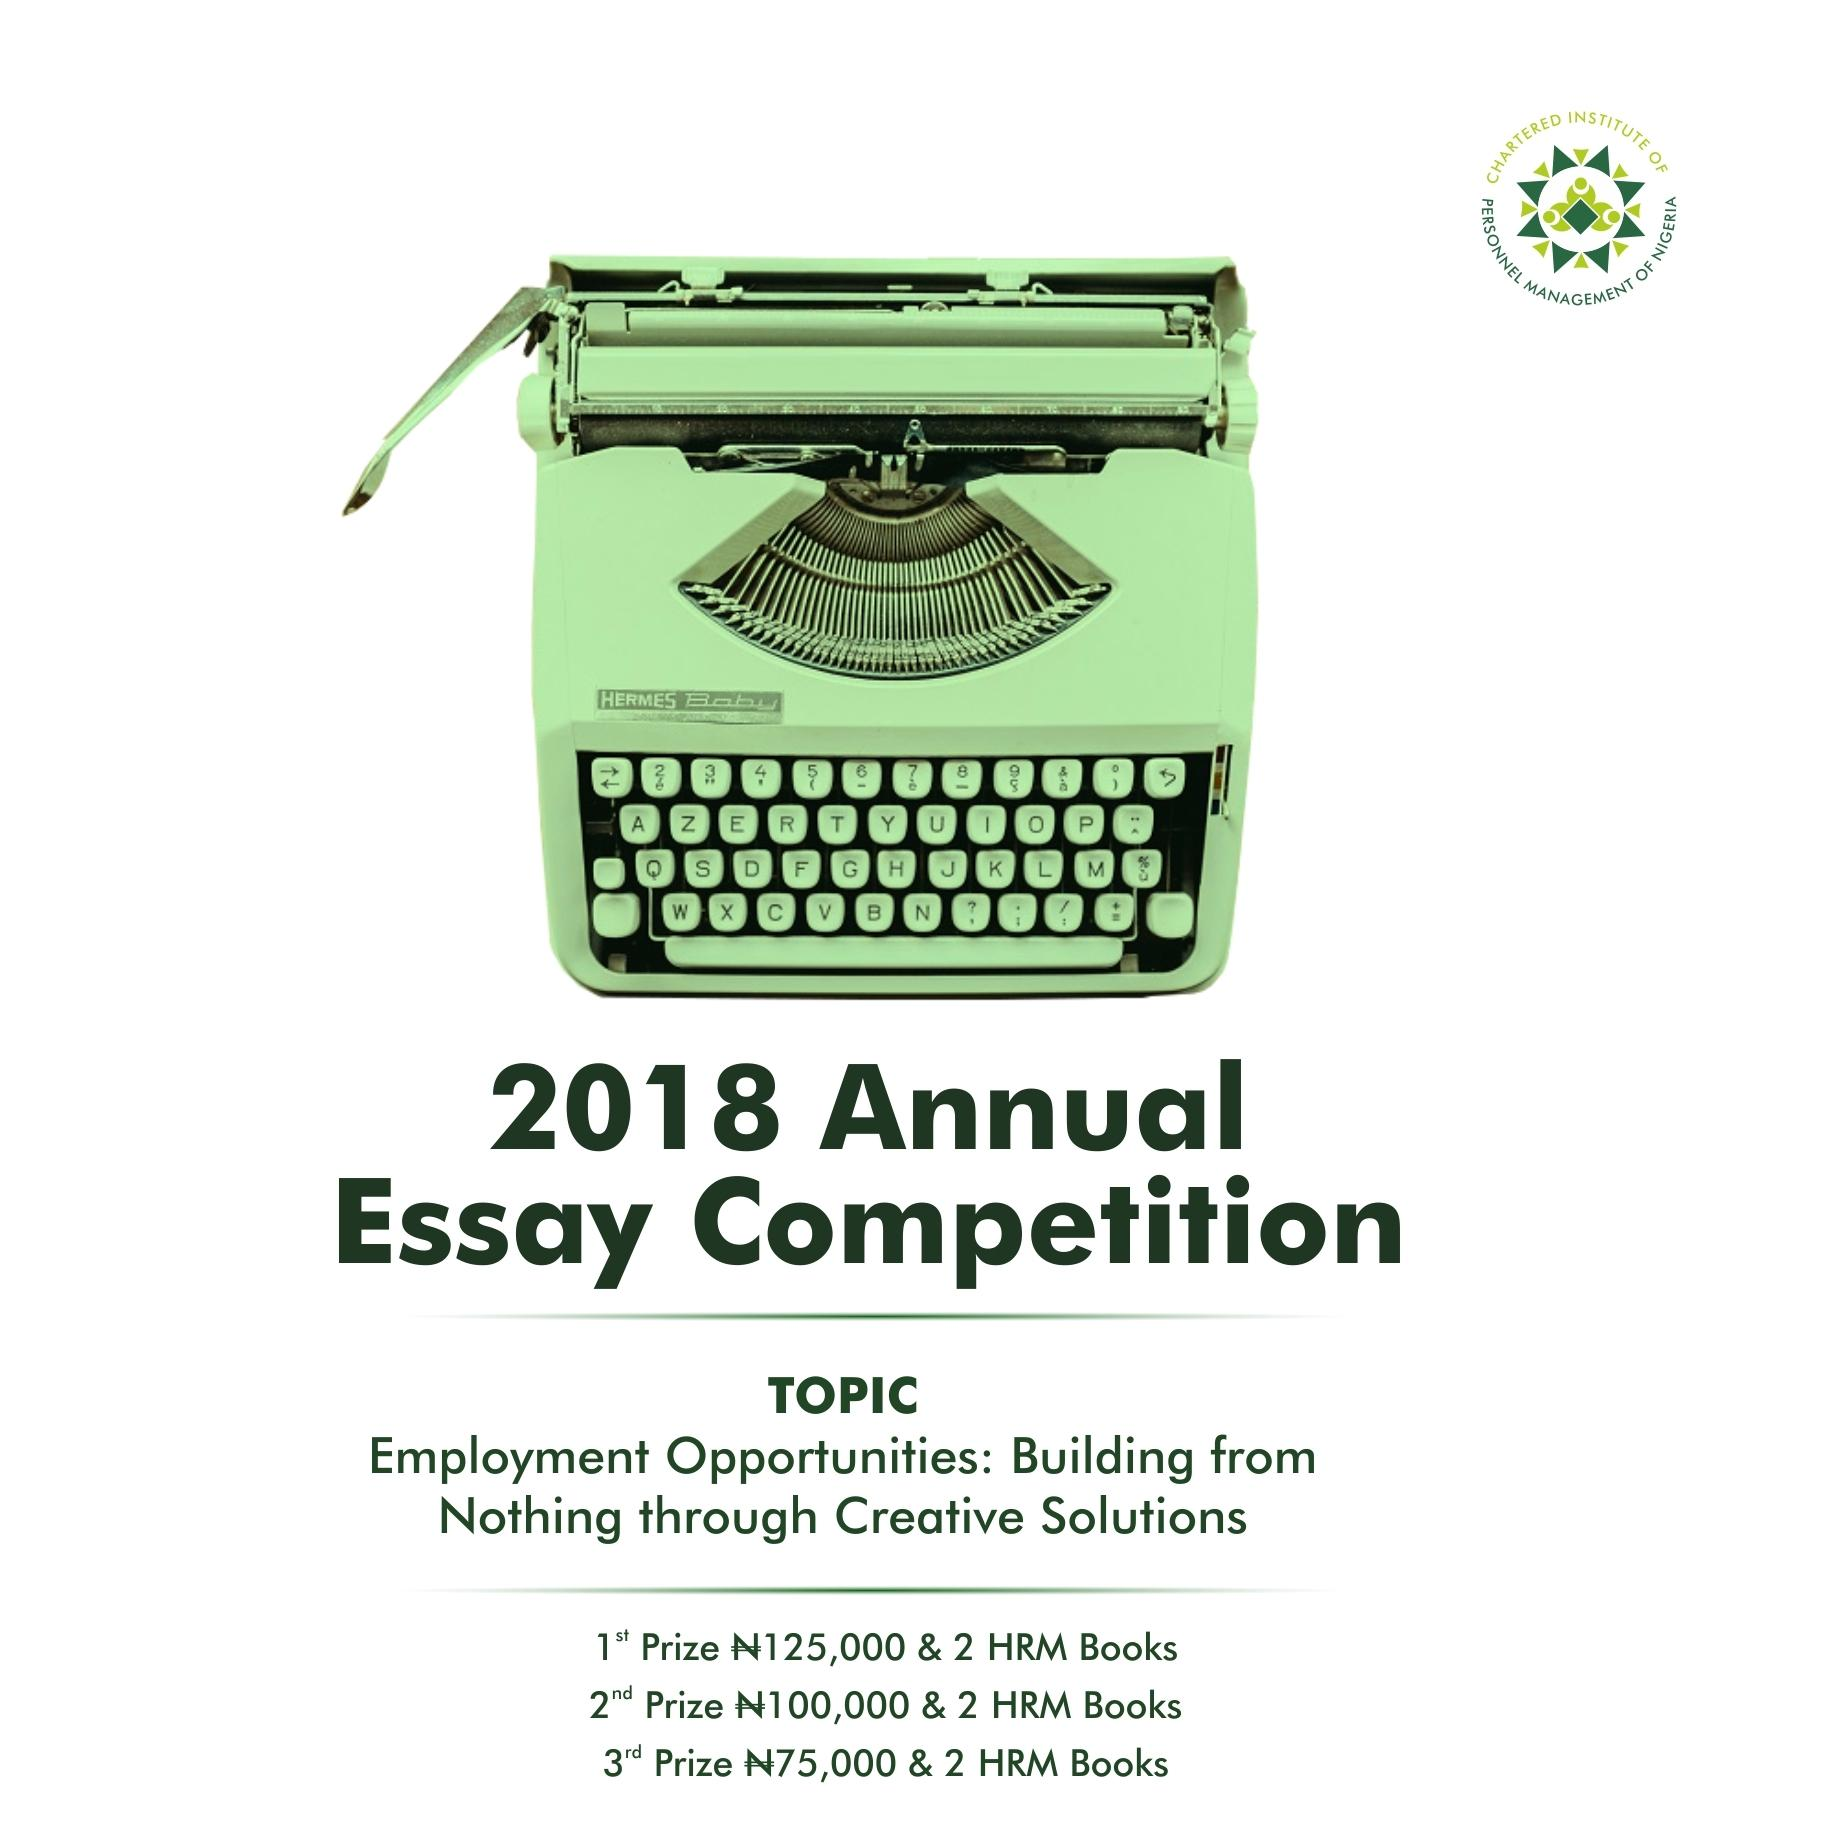 CIPM Annual Essay Competition 2018